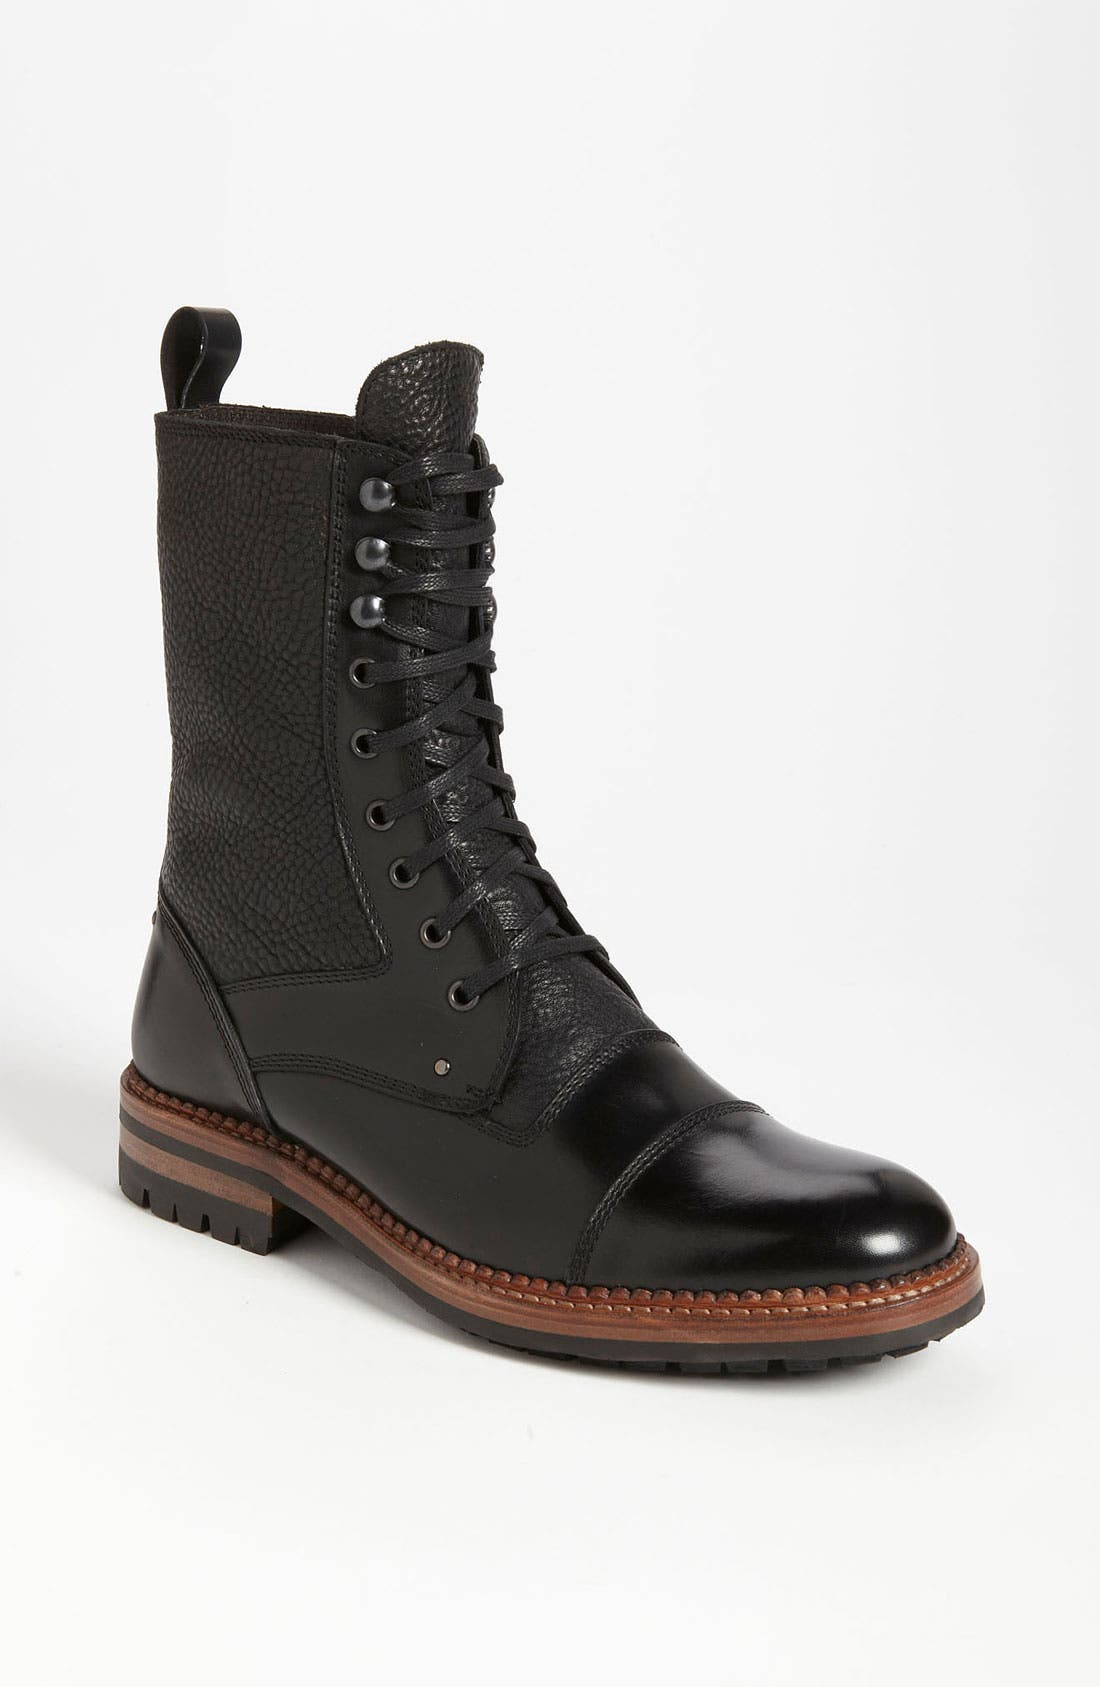 Alternate Image 1 Selected - Bruno Magli 'Palatino' Cap Toe Boot